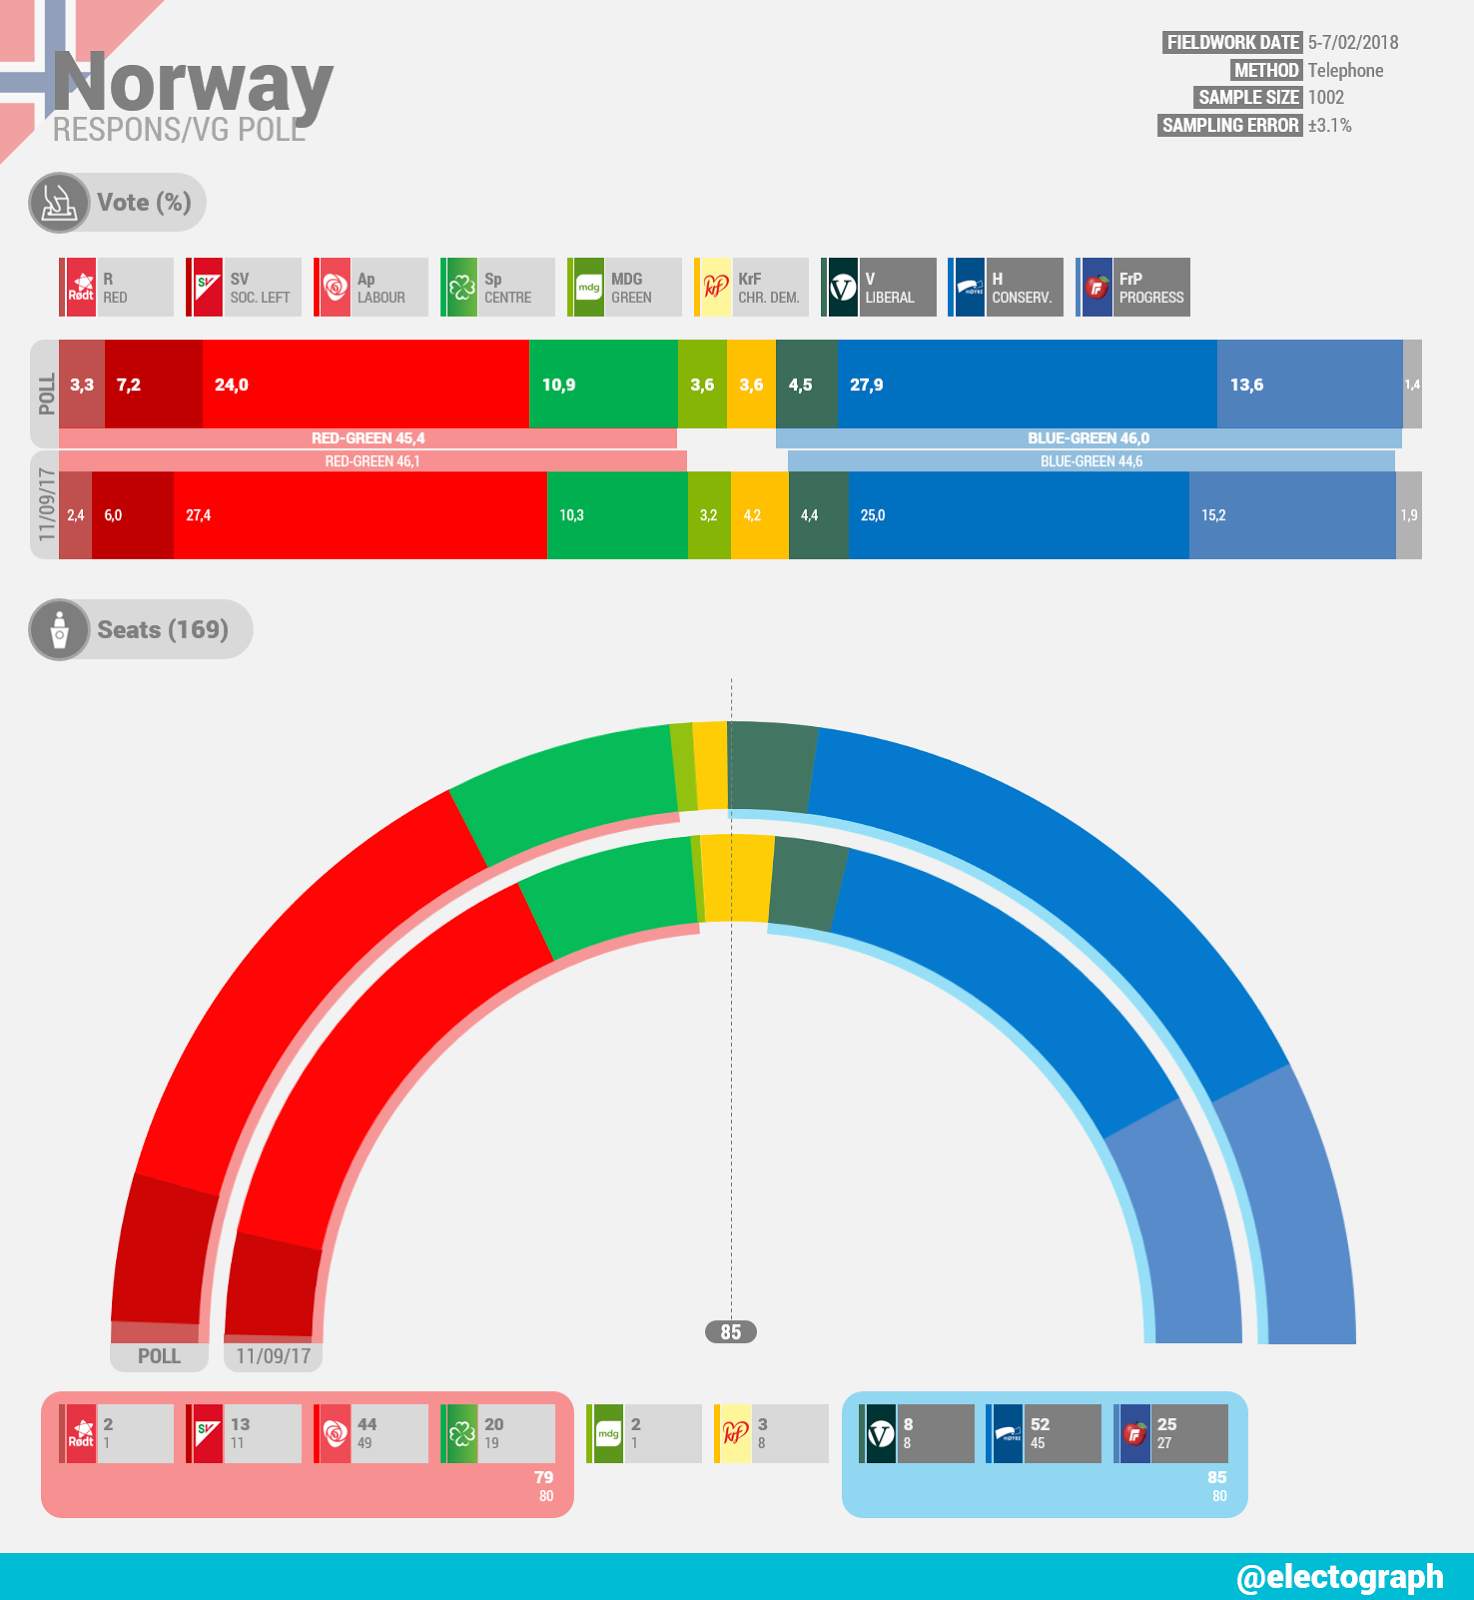 NORWAY Respons poll chart for VG, February 2018